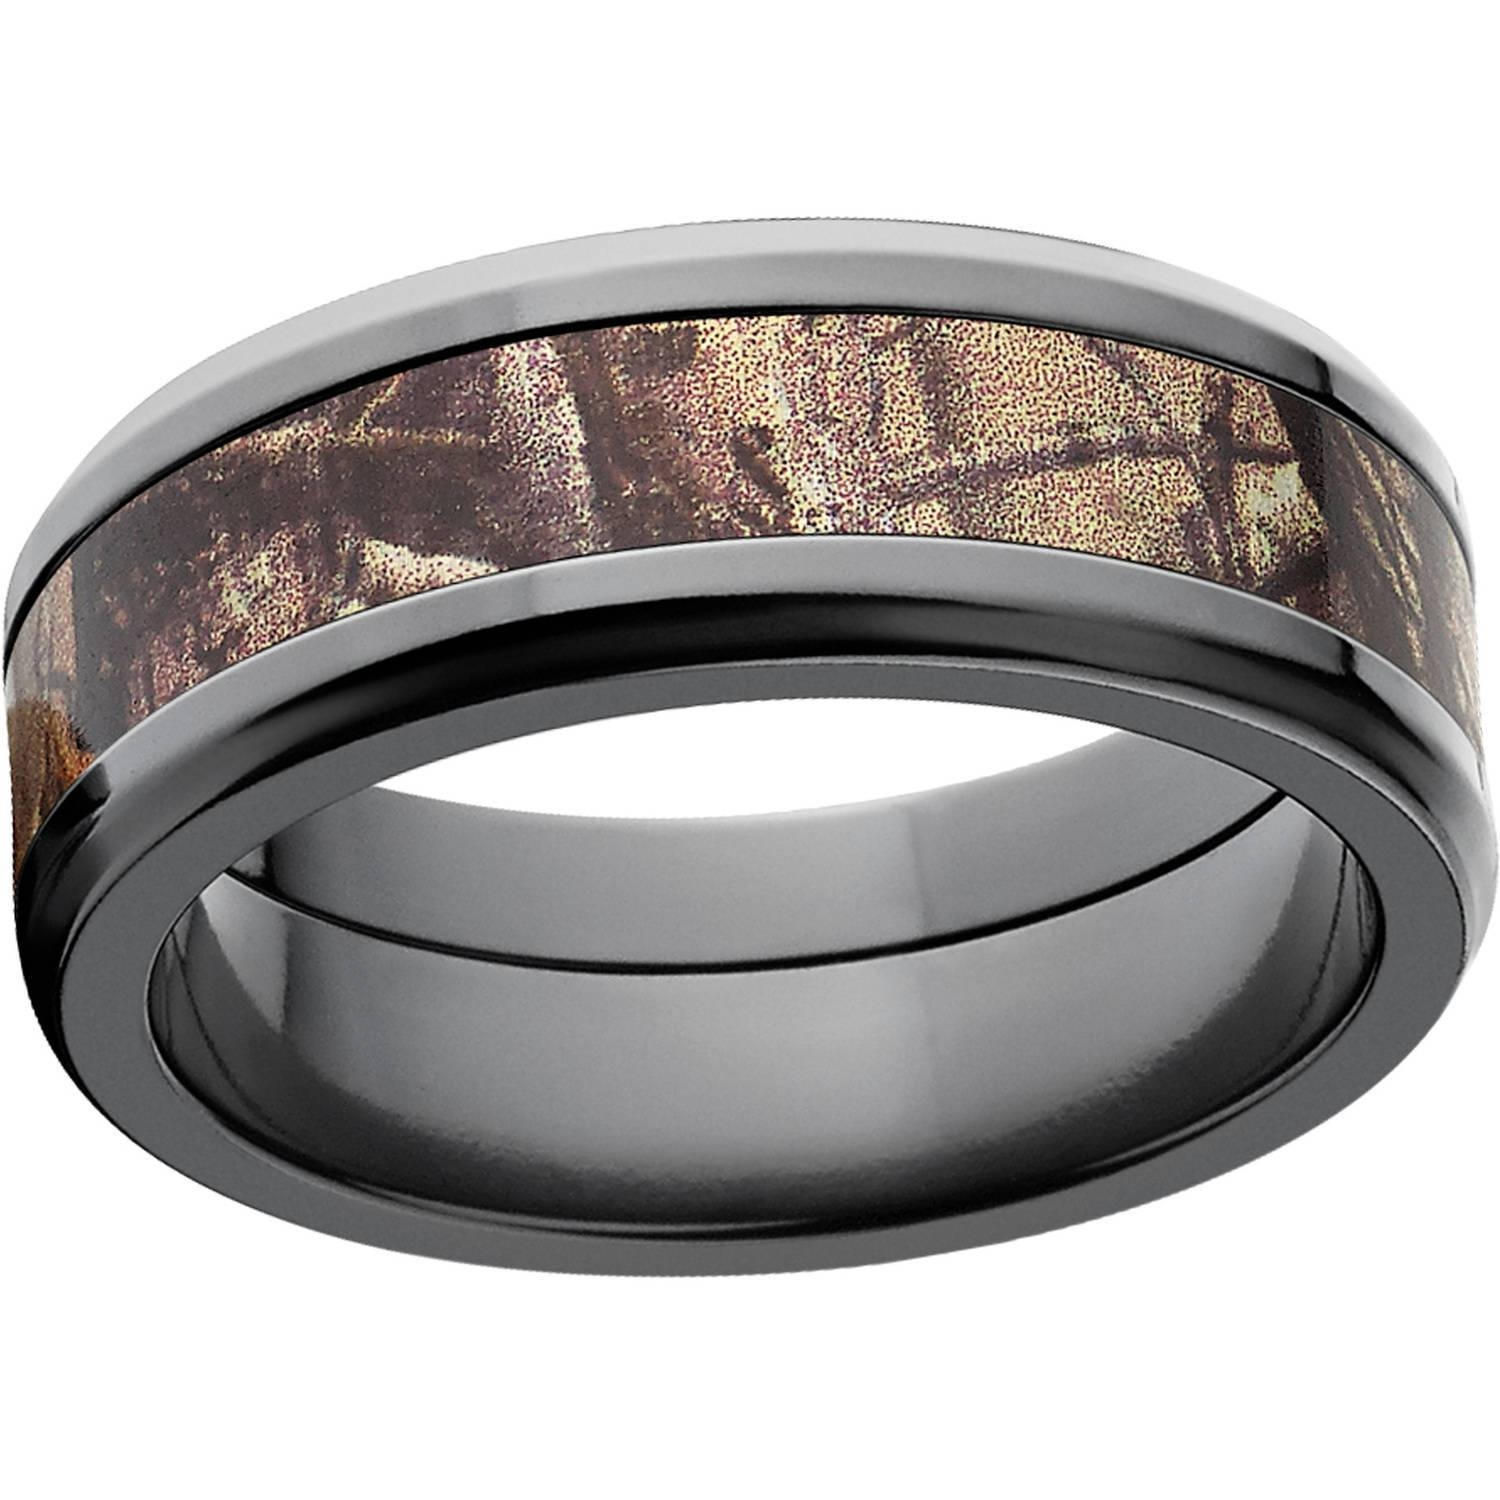 2019 Popular Walmart Wedding Bands For Men